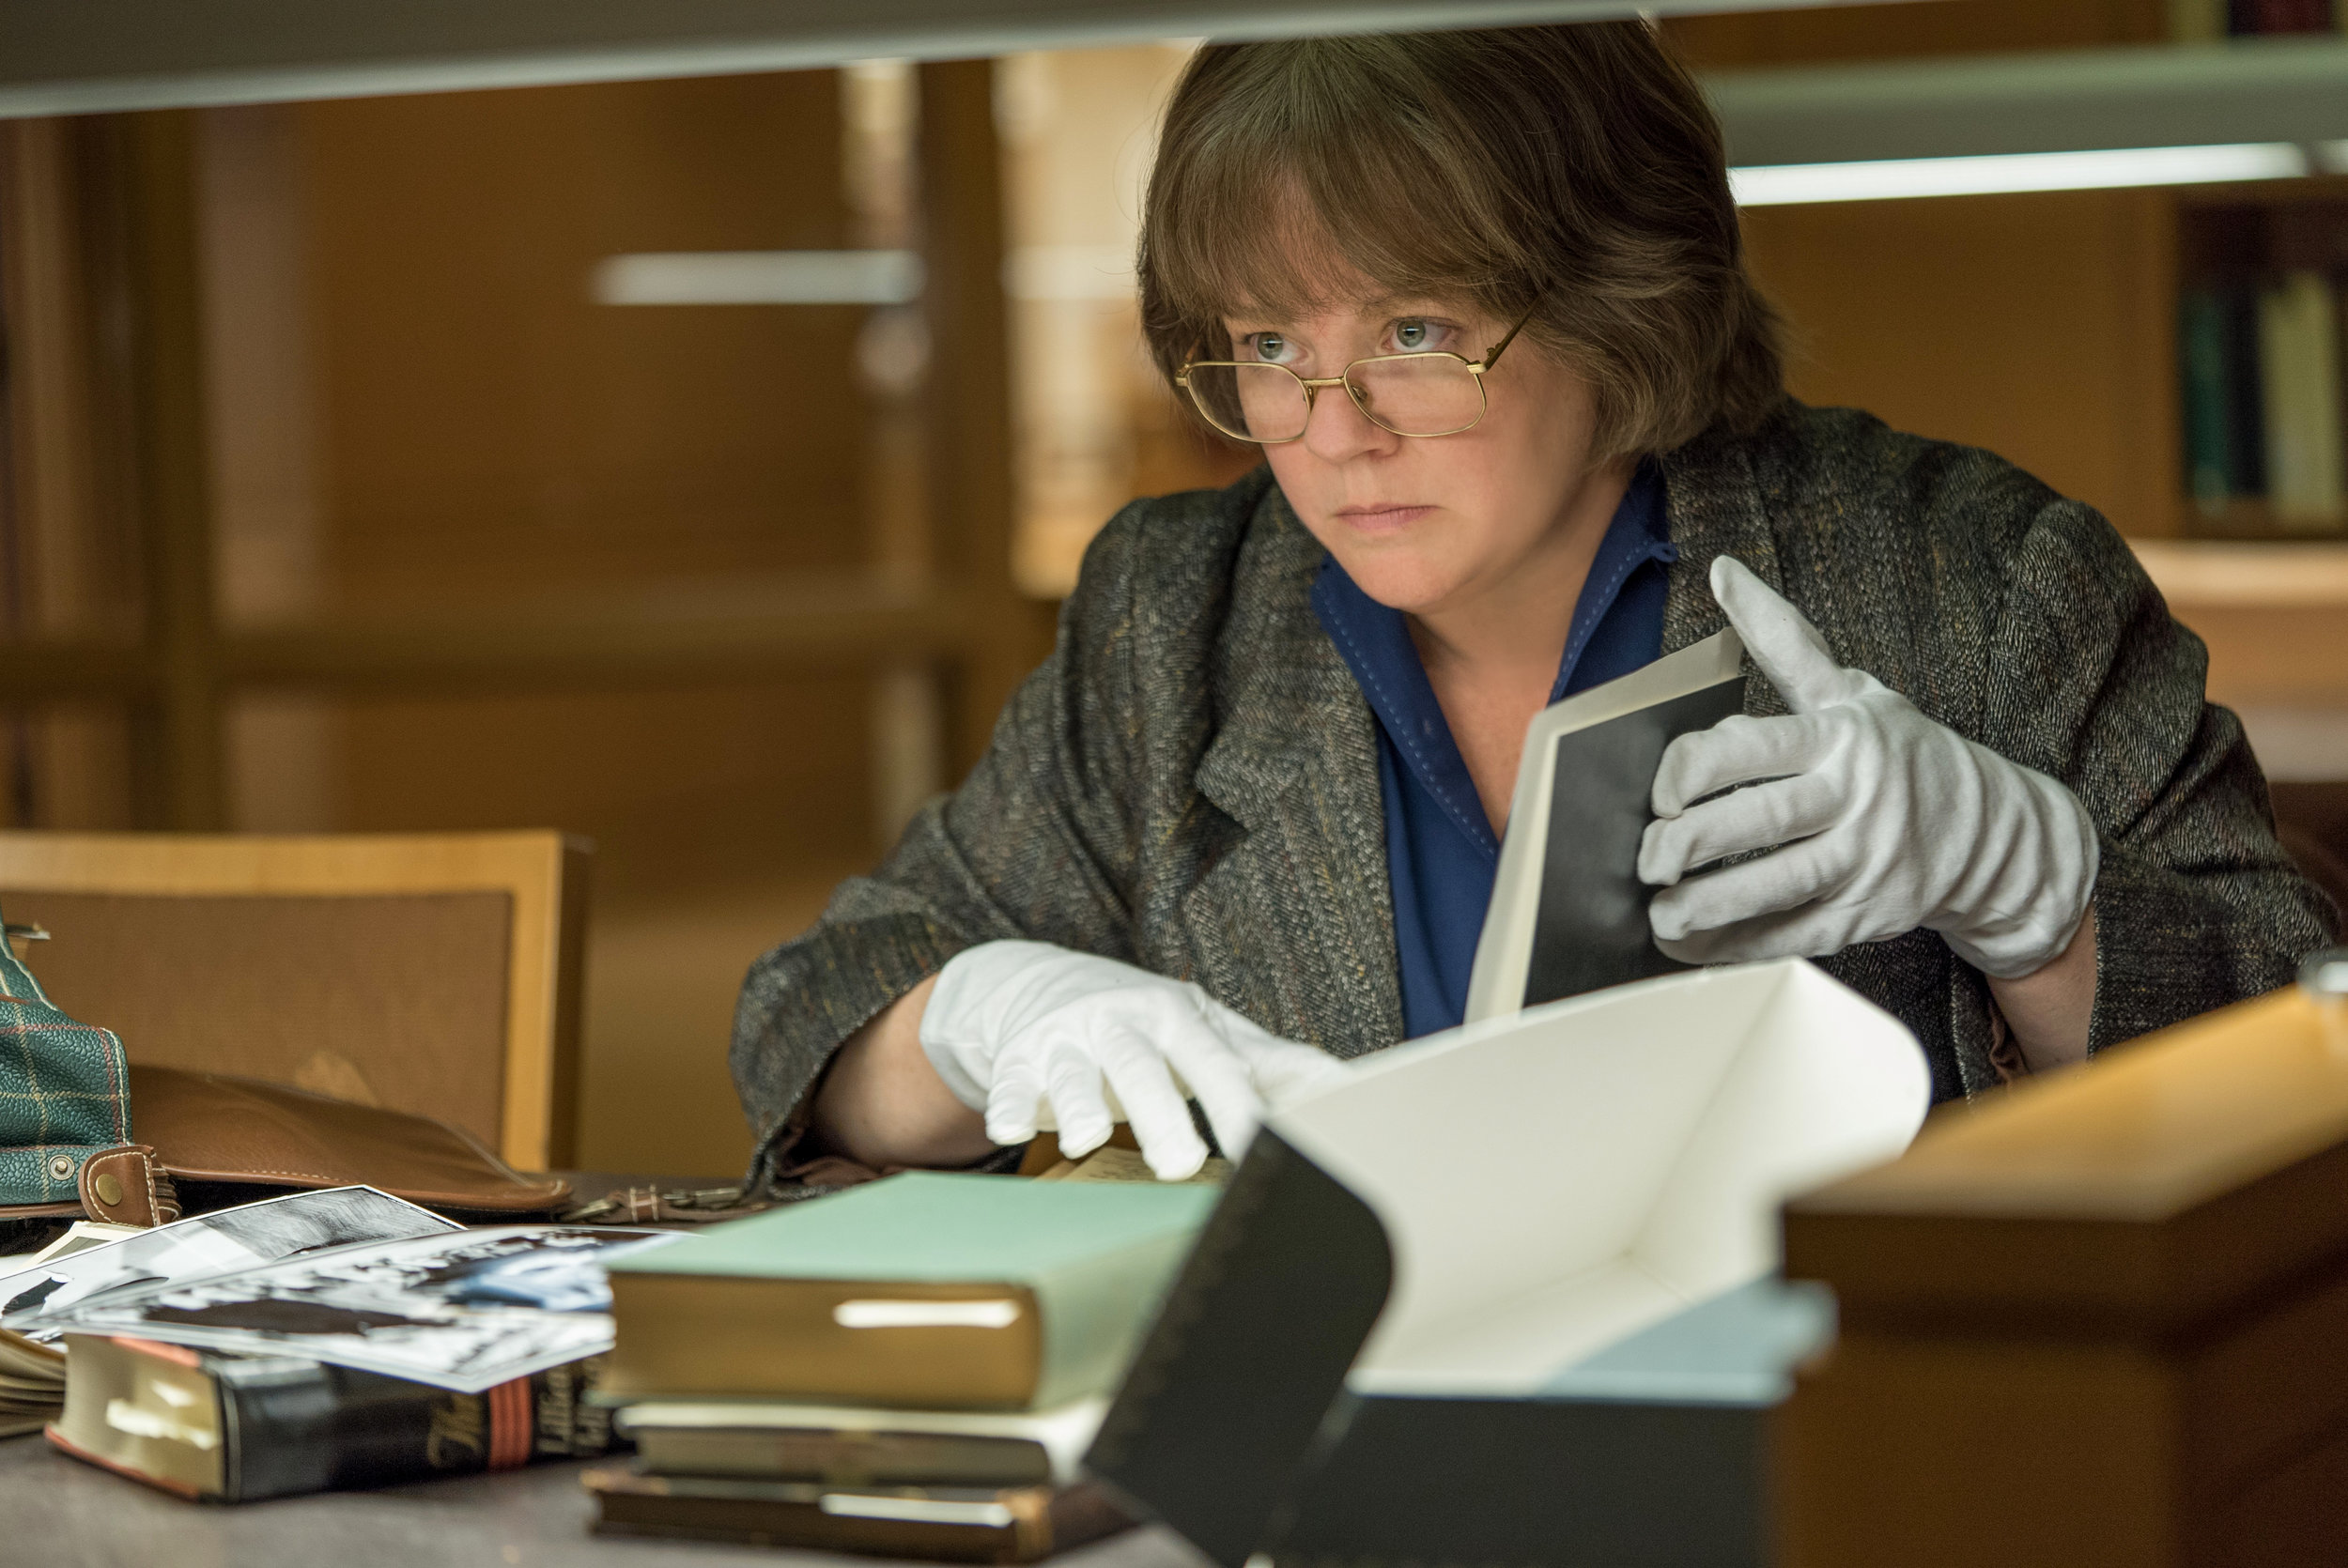 """Melissa McCarthy plays Lee Israel, a biographer who discovers a lucrative second career as a forger, in the drama """"Can You Ever Forgive Me?"""" (Photo by Mary Cybulski, courtesy Fox Searchlight Pictures)"""